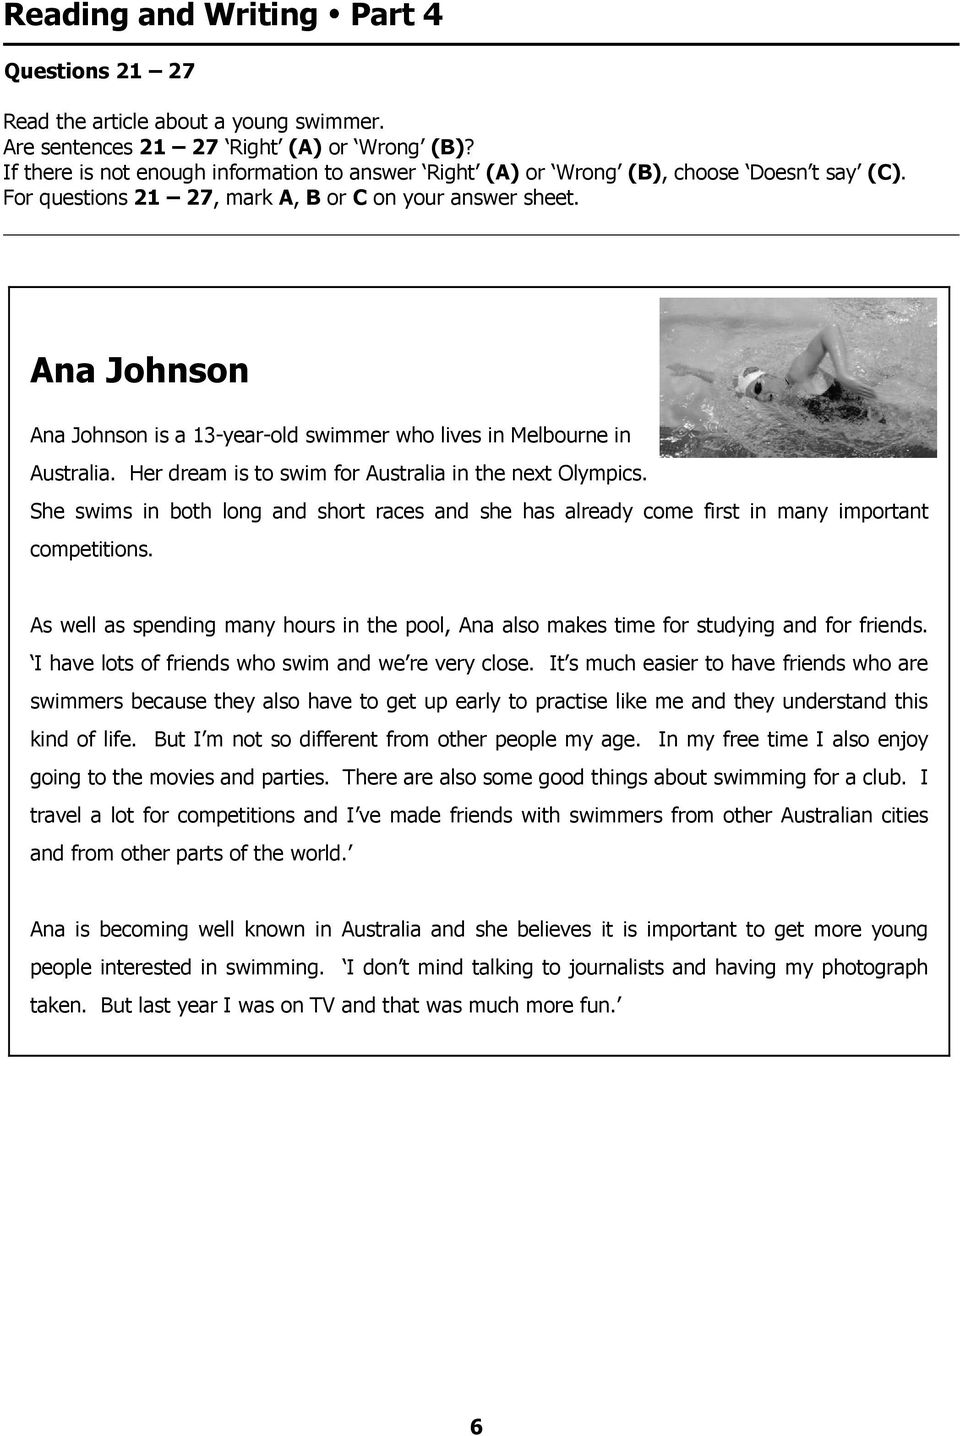 Ana Johnson Ana Johnson is a 13-year-old swimmer who lives in Melbourne in Australia. Her dream is to swim for Australia in the next Olympics.